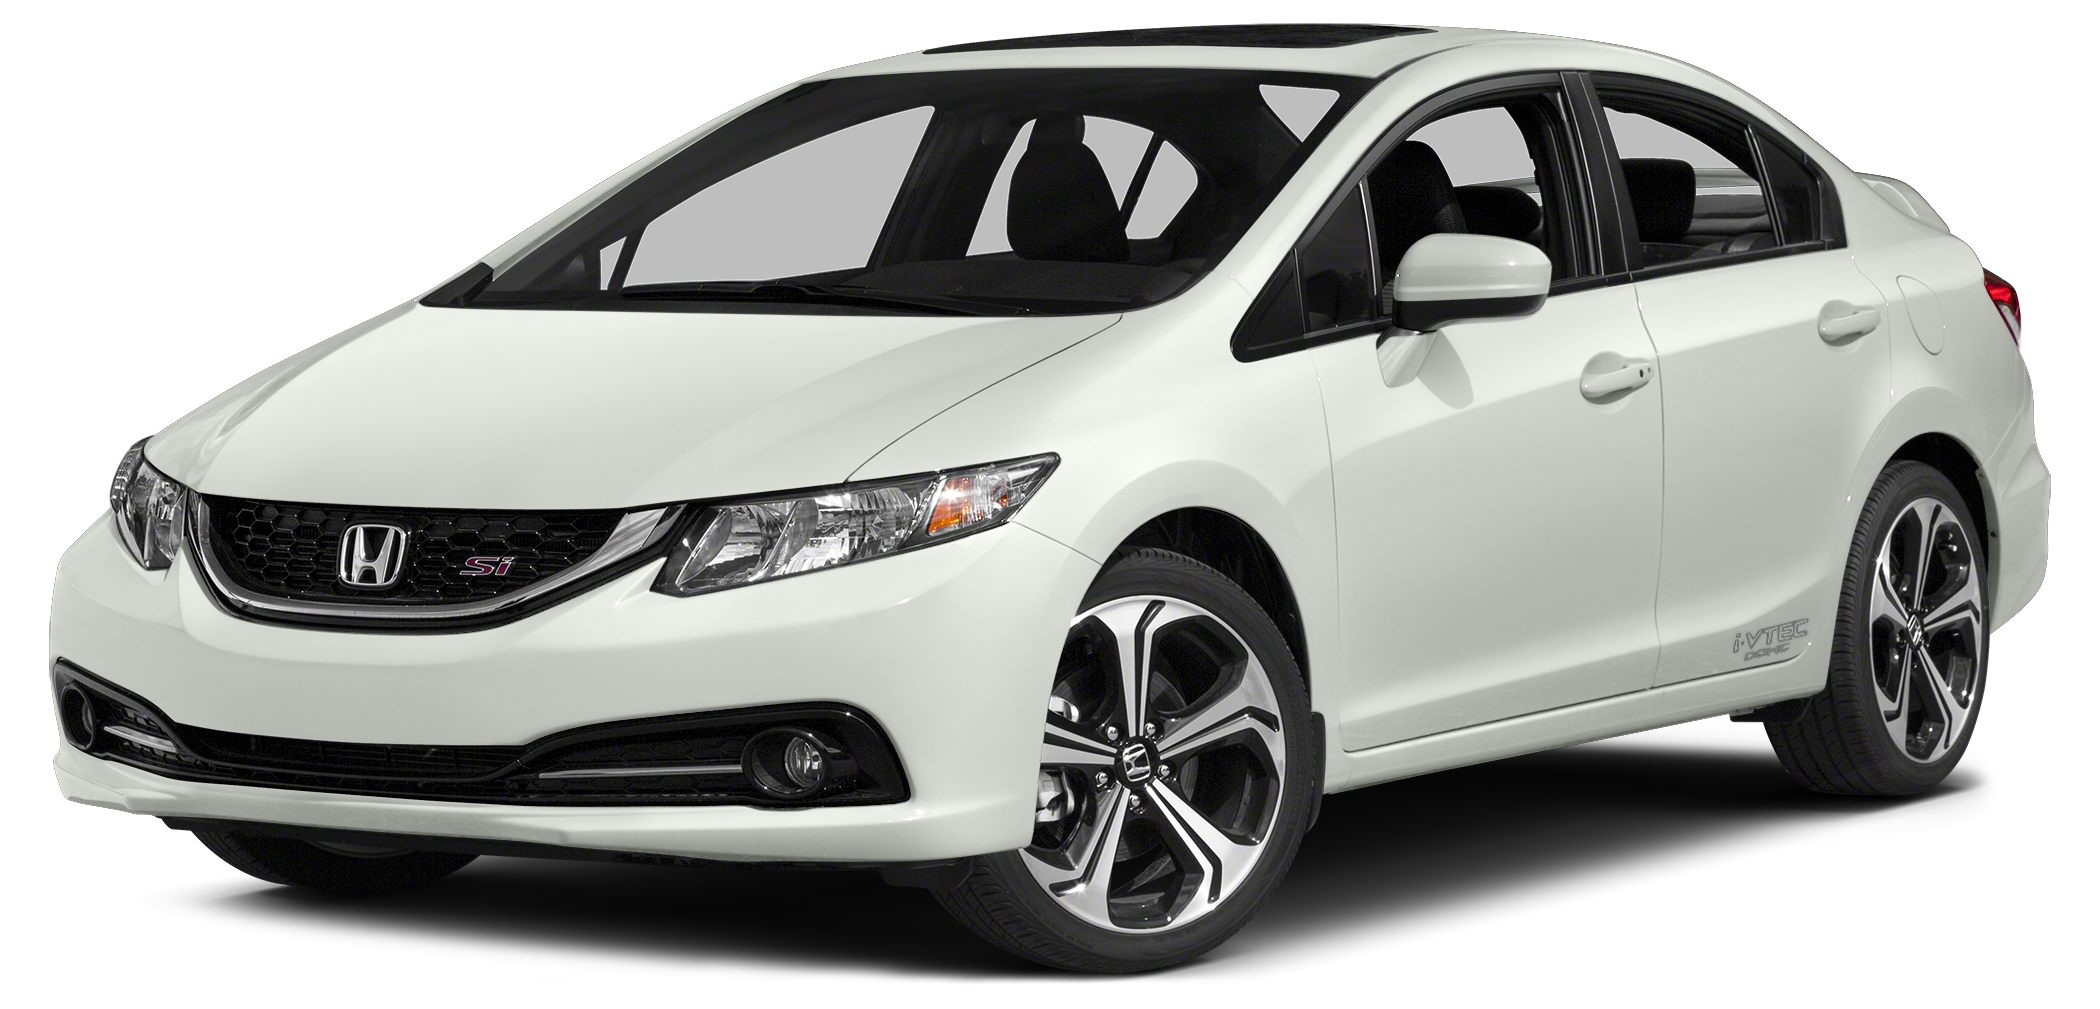 2014 Honda Civic Si BlackRed 6spd manual Join us at West Coast Auto Dealers Dont pay too much